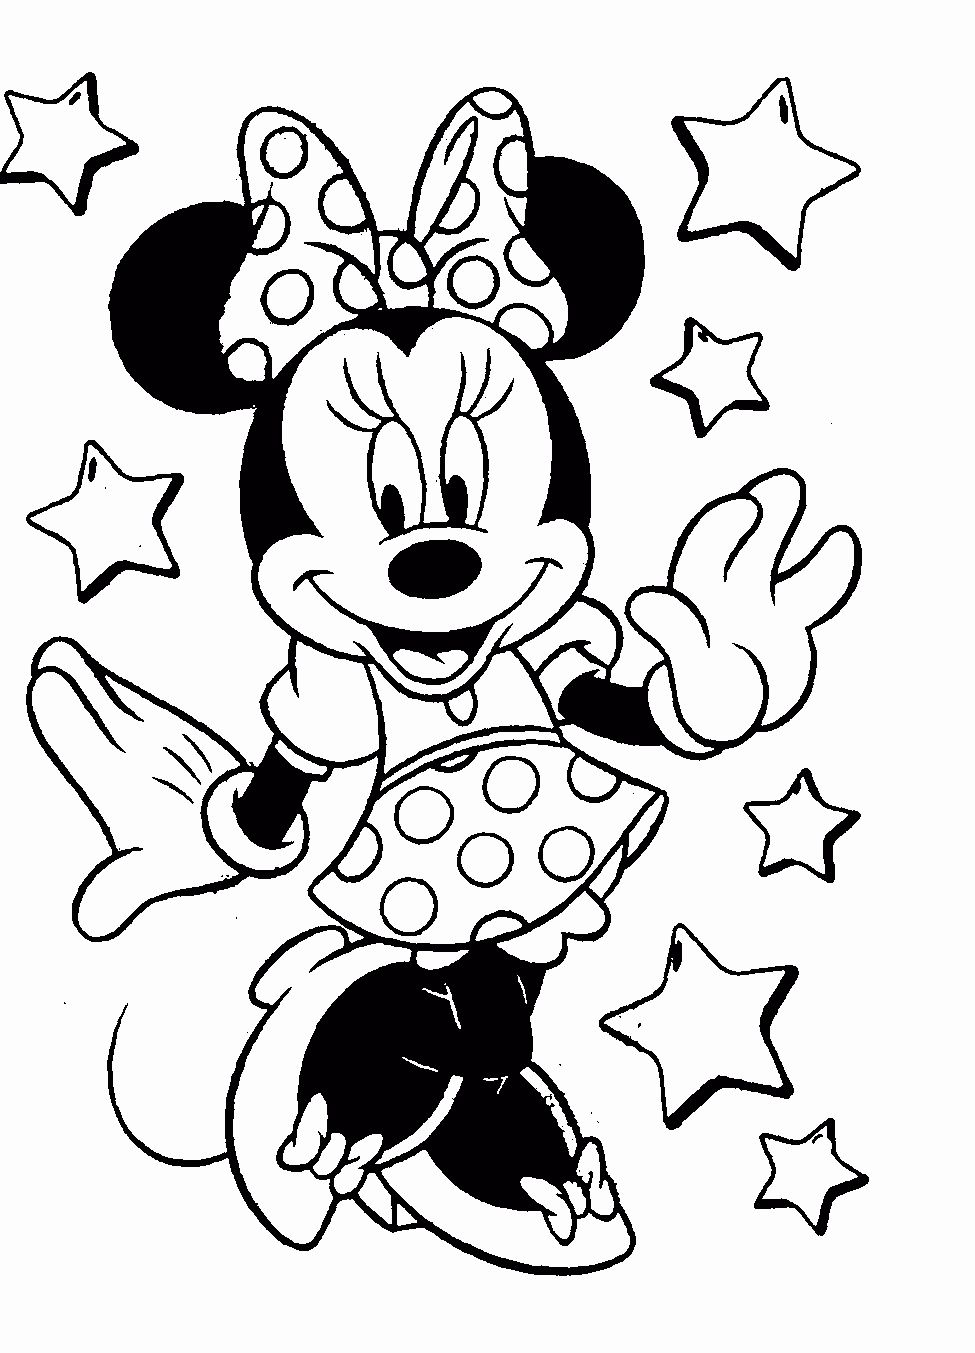 Coloring Pages For Kids To Print Disney In 2020 Free Disney Coloring Pages Mickey Mouse Coloring Pages Minnie Mouse Coloring Pages